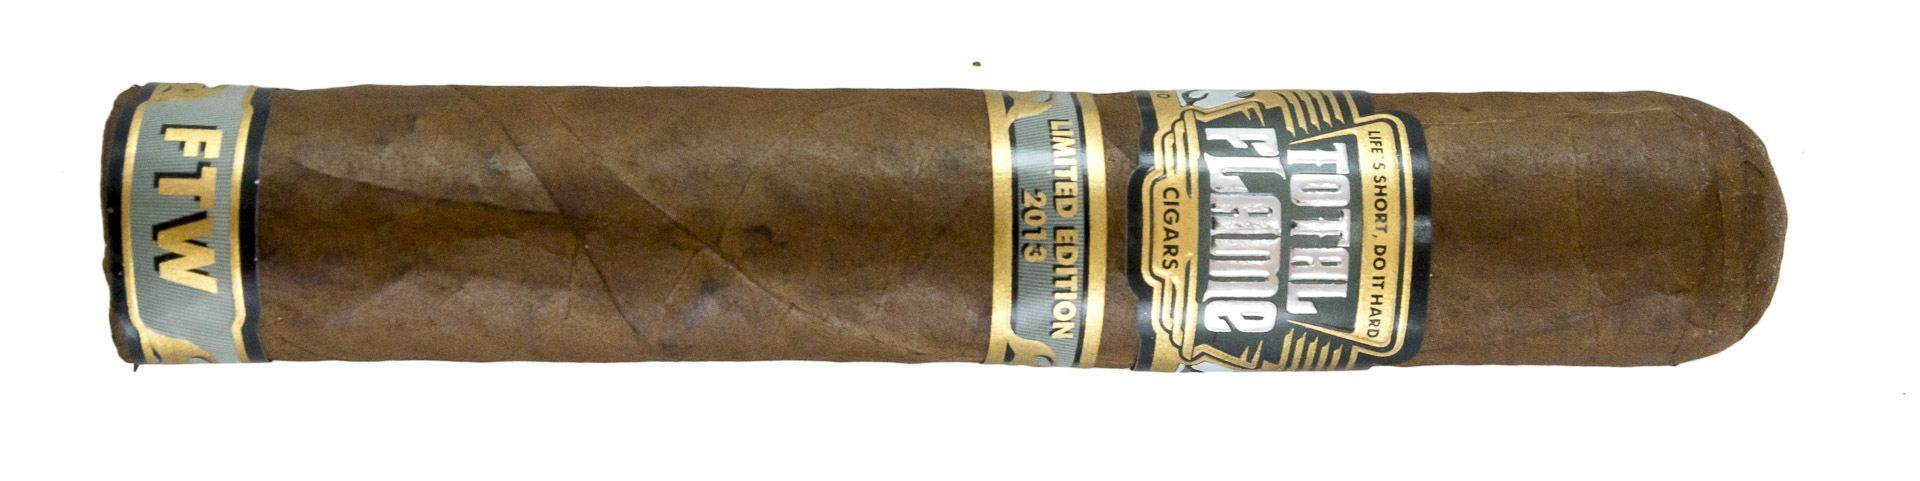 Blind Cigar Review: Total Flame | FTW Robusto